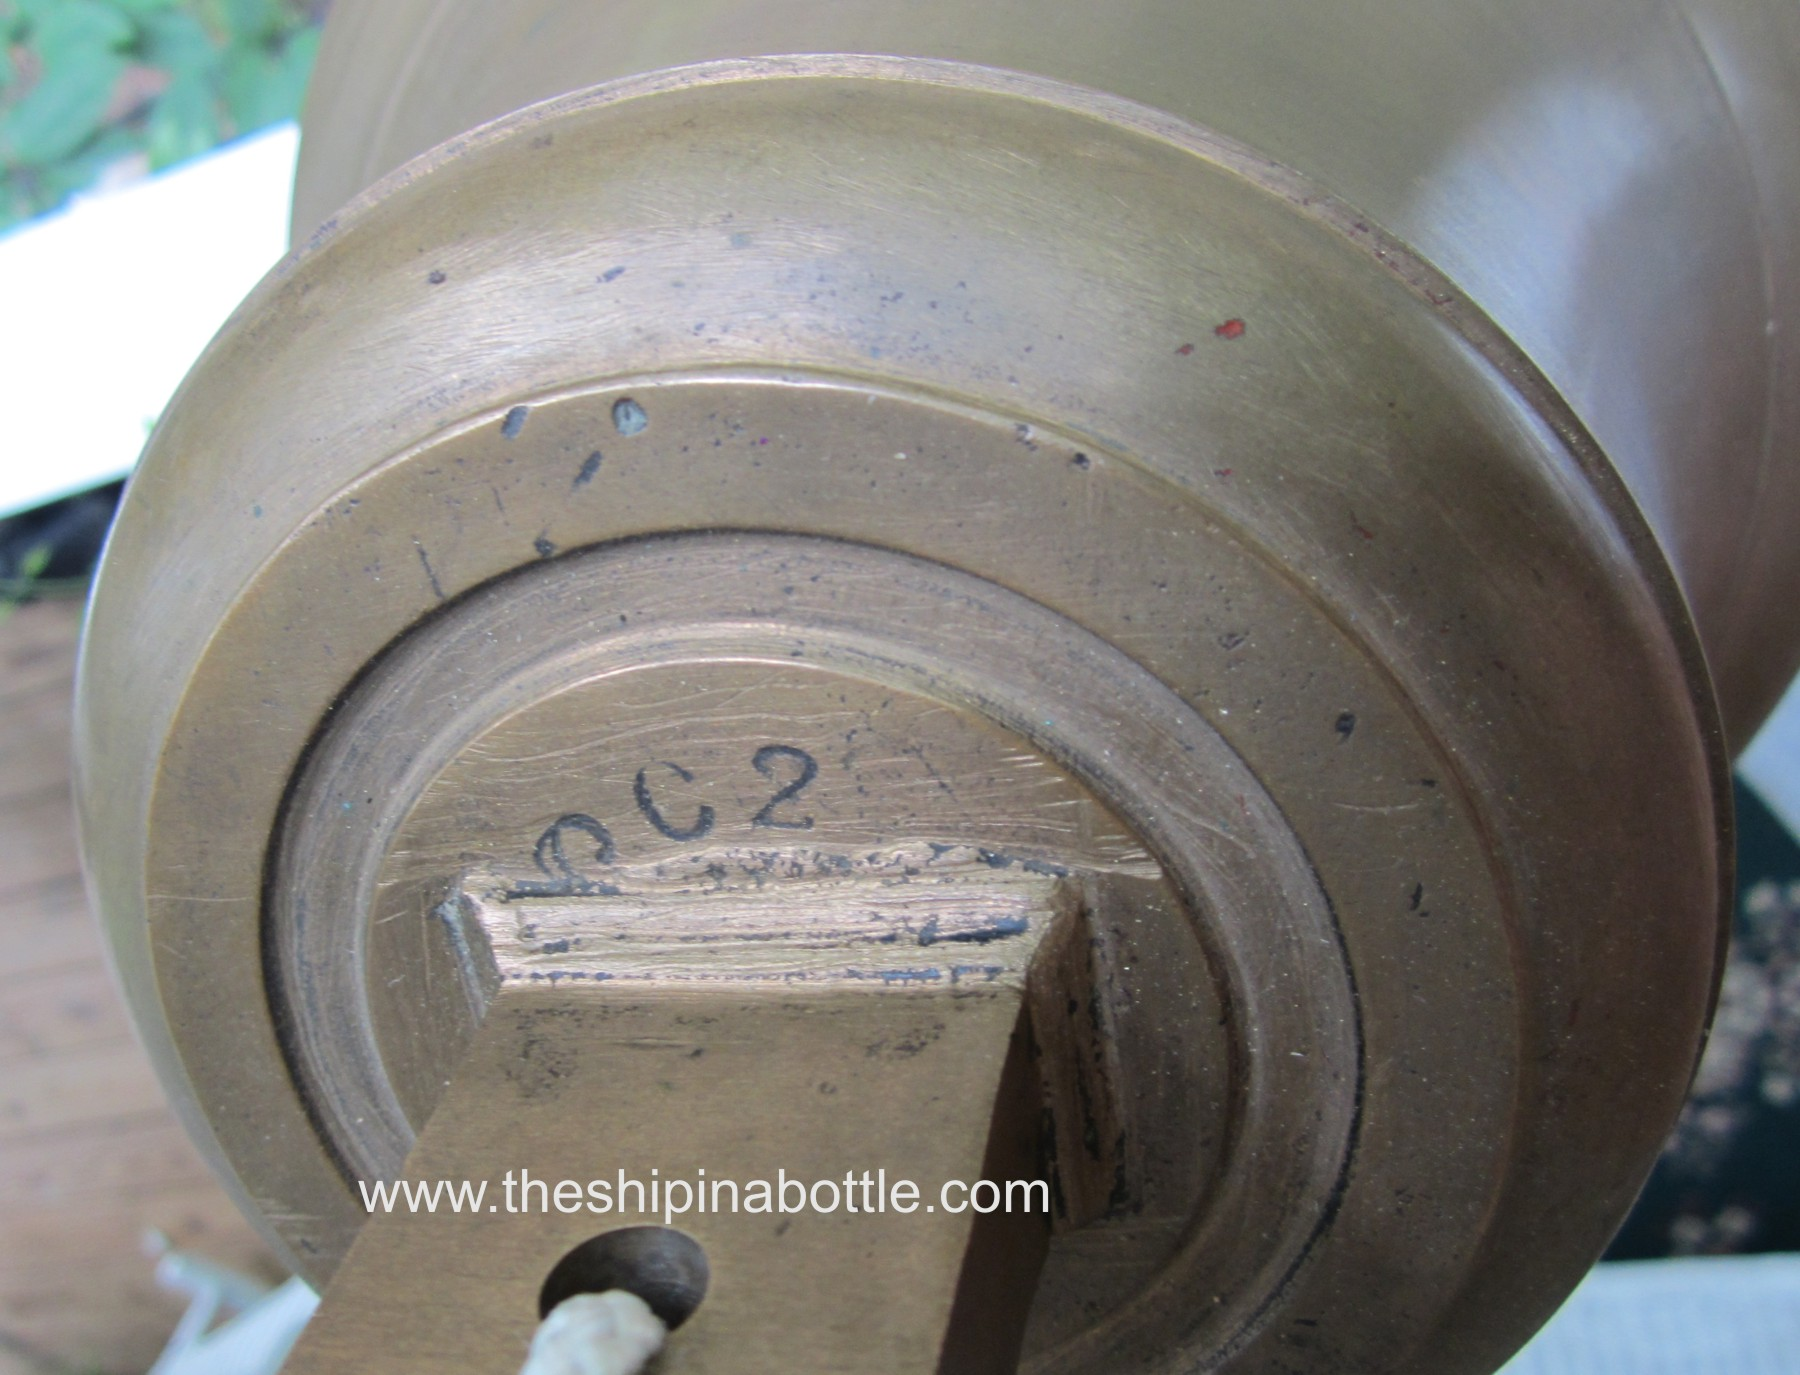 Markings on commercial fishing bell